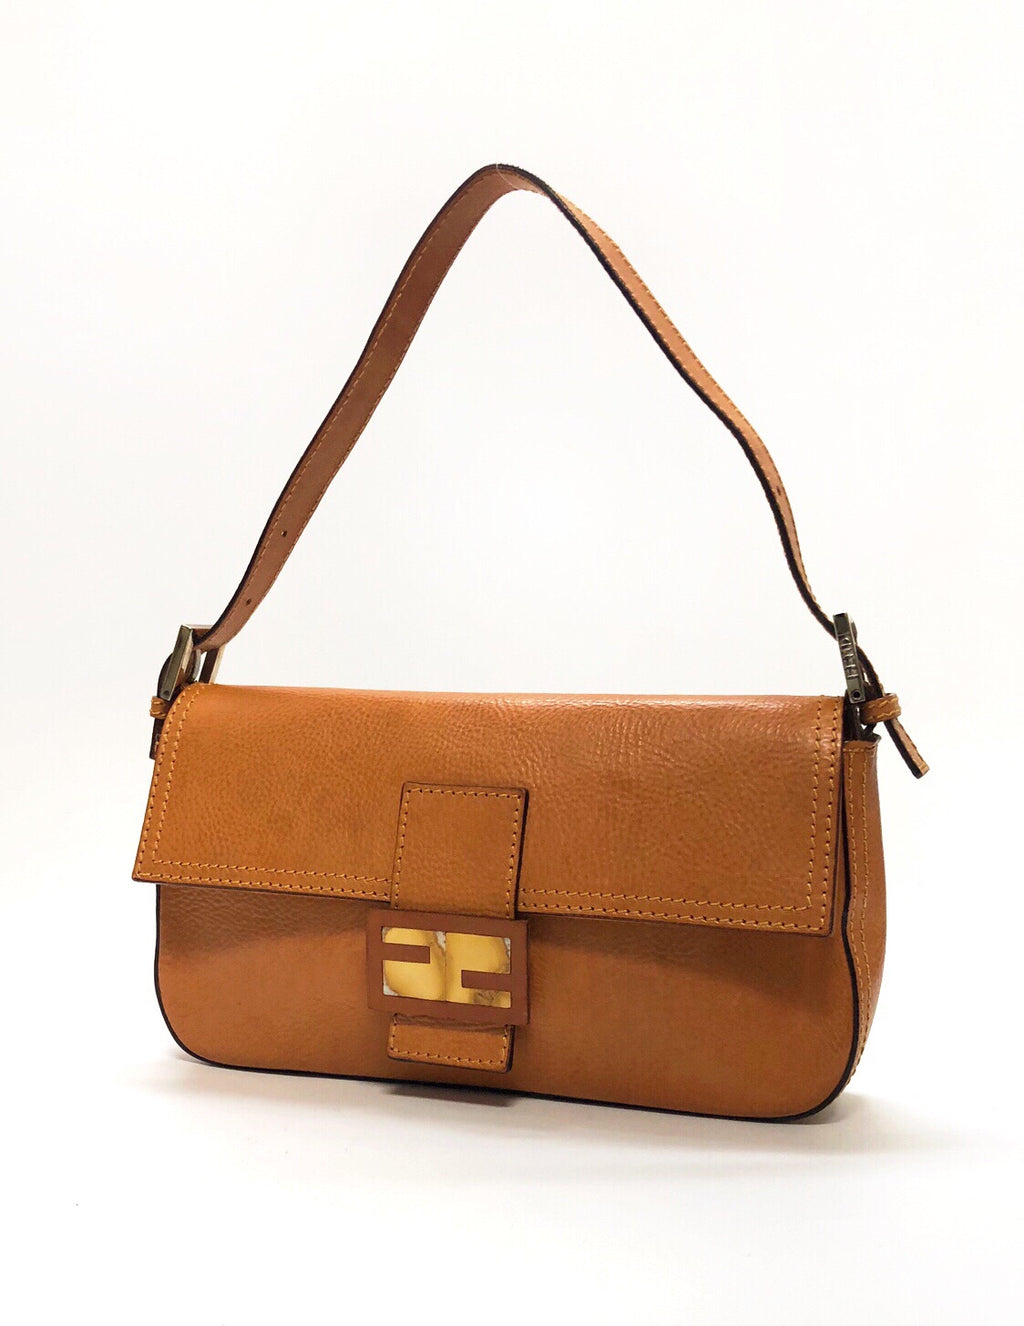 Fendi Cognac Leather Baguette